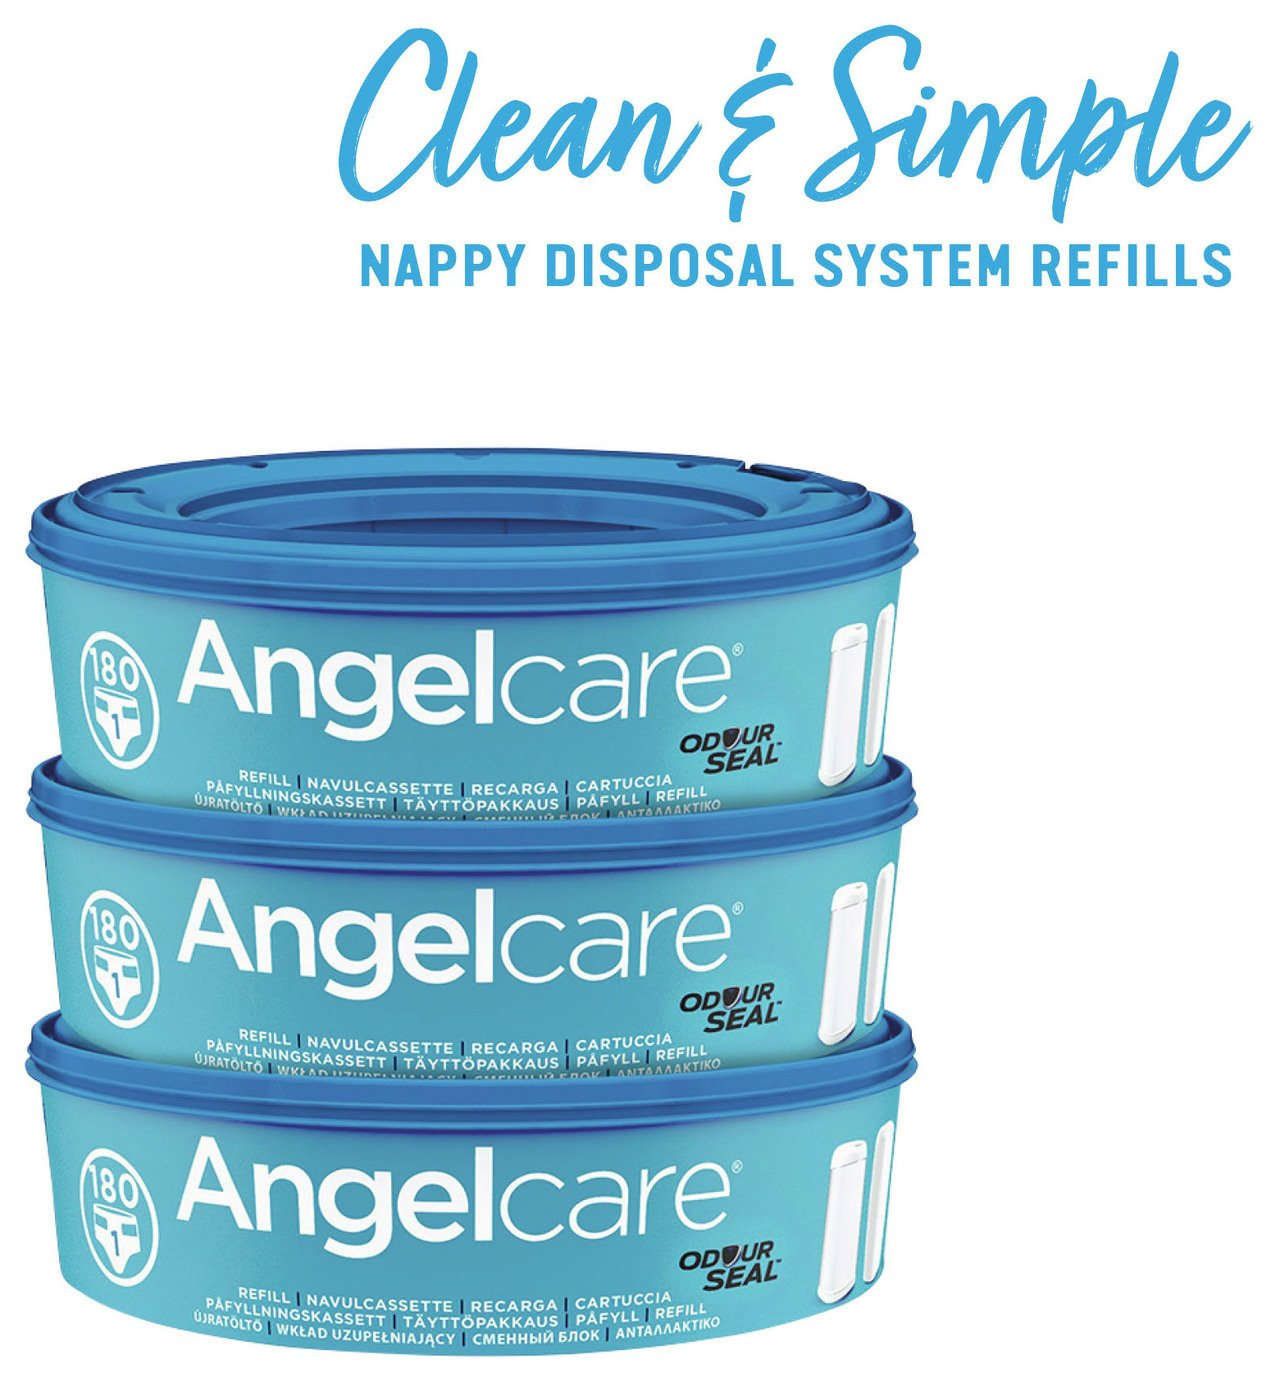 Cheapest price of Angelcare Refill Cassettes 3 pack in new is £14.99